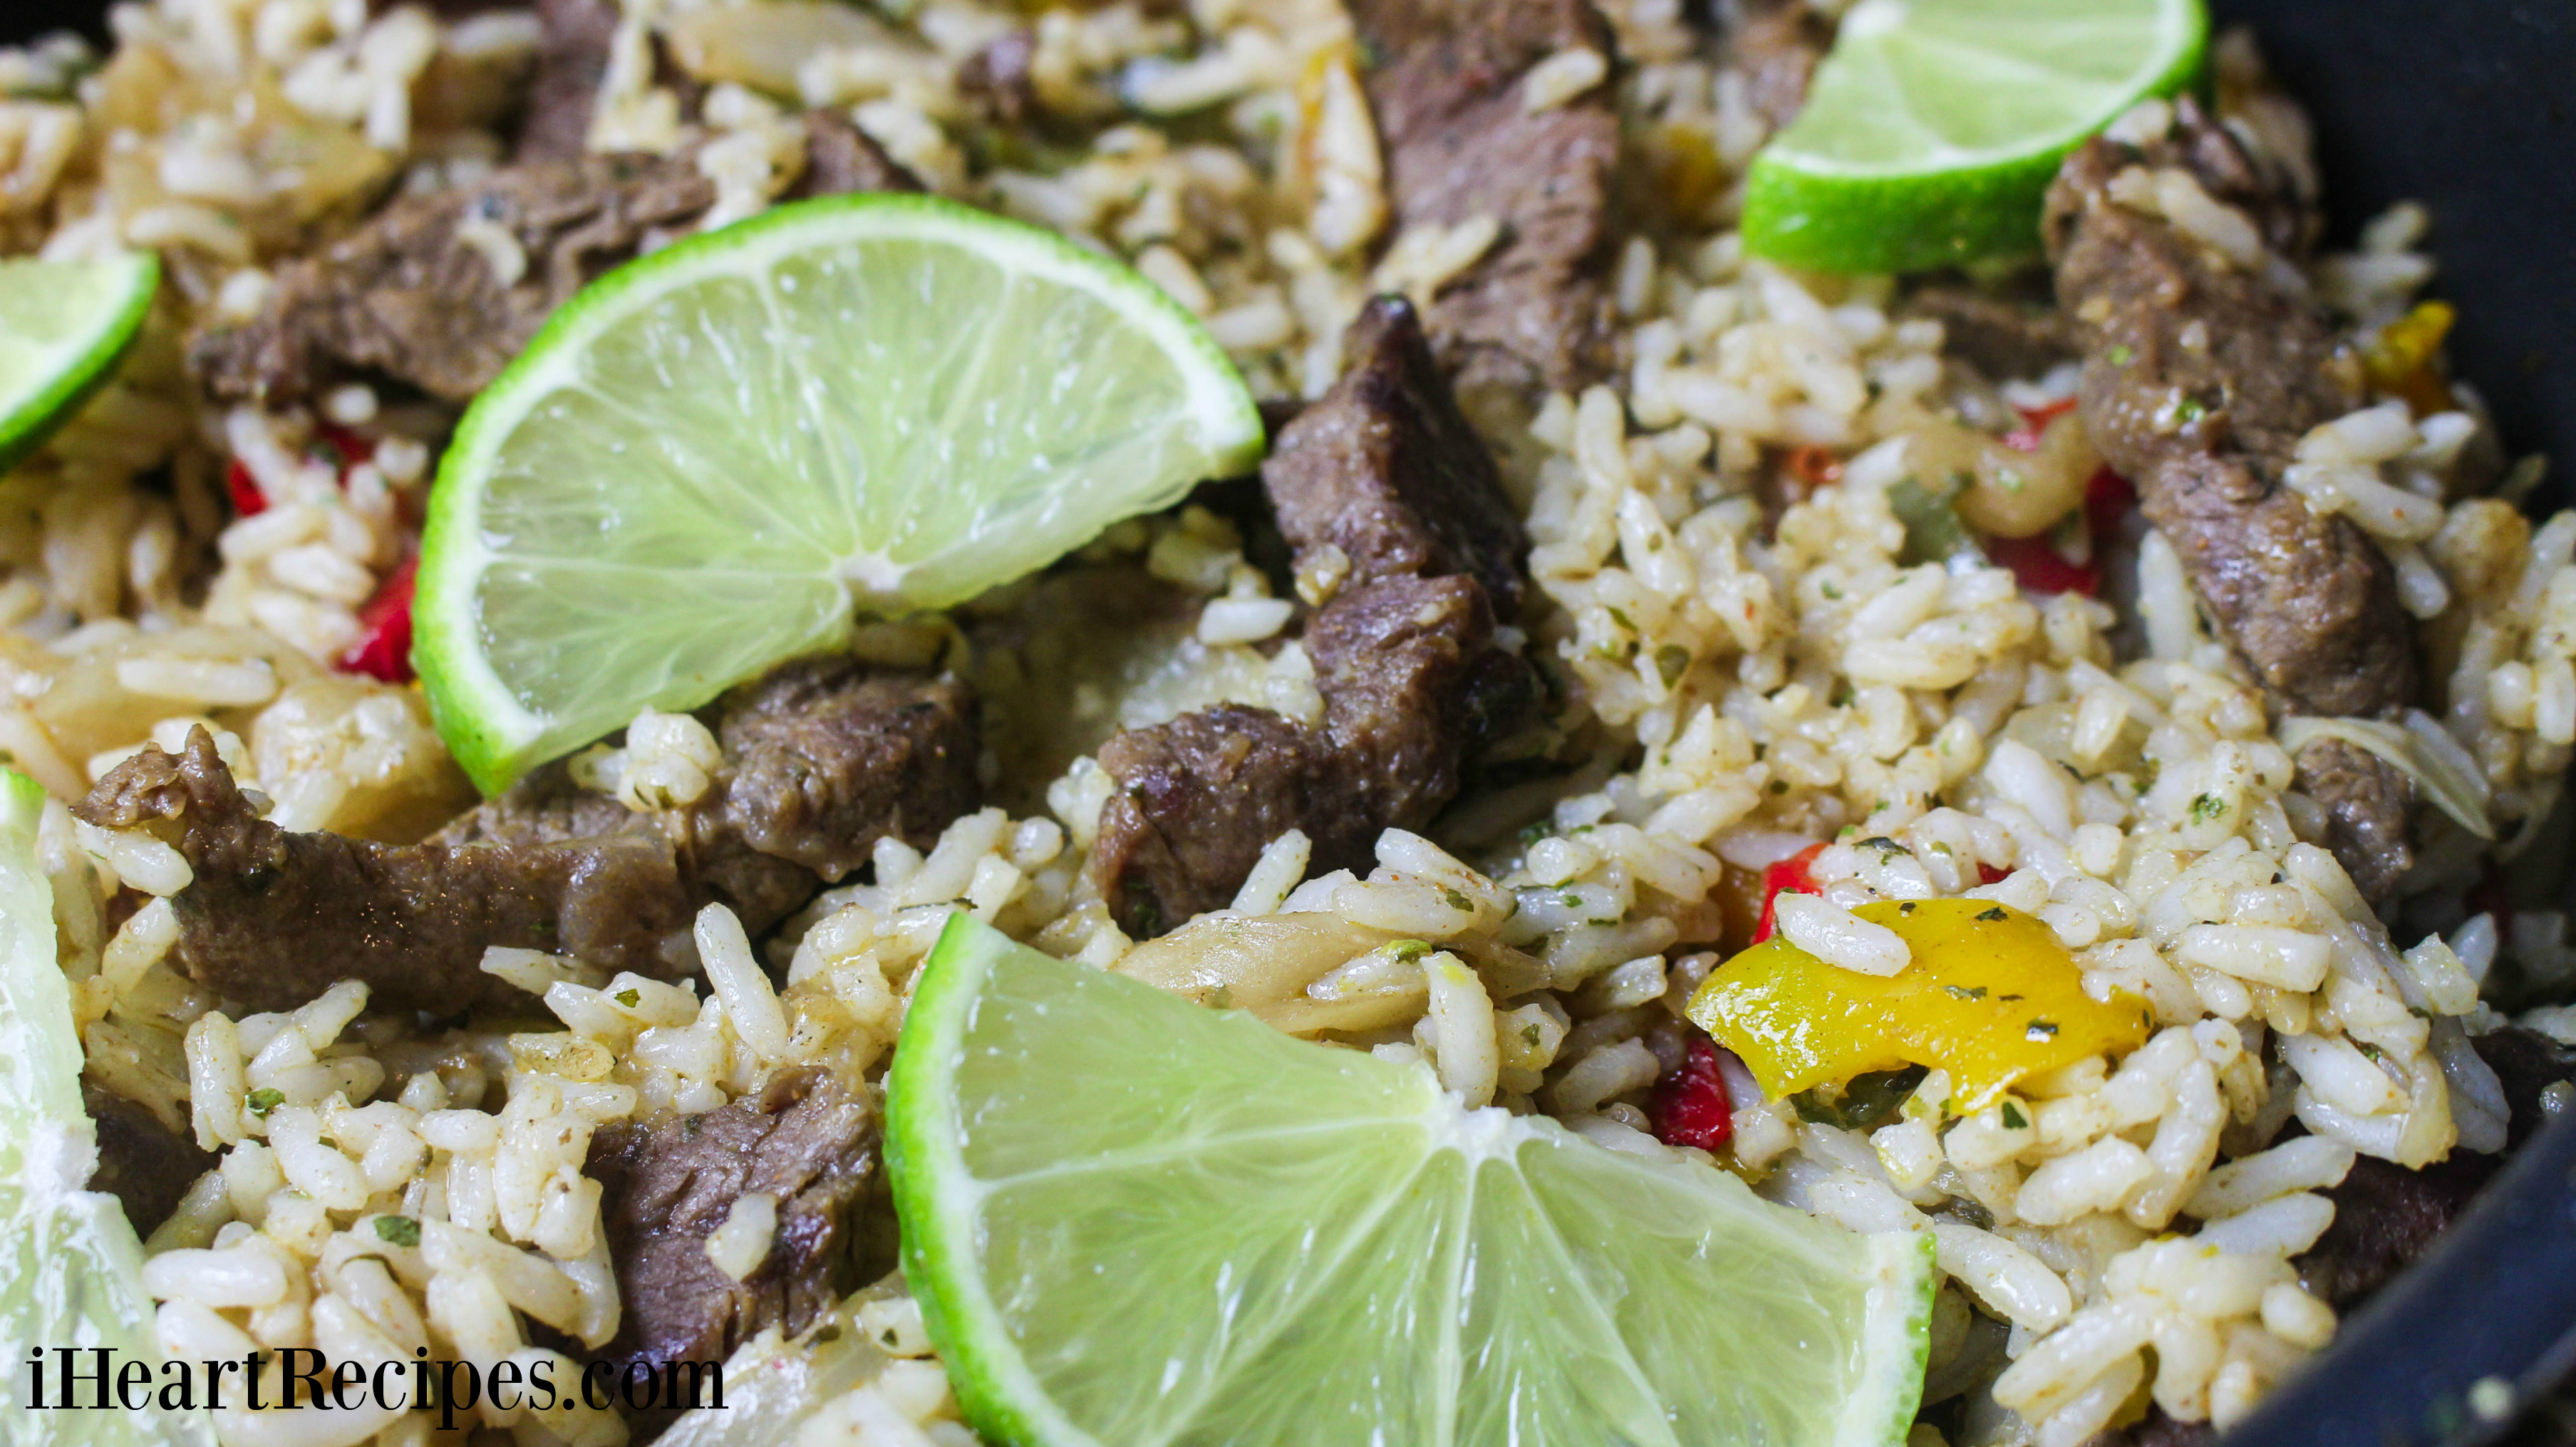 This steak fajita skillet is a quick and healthy meal with white rice and tons of veggies